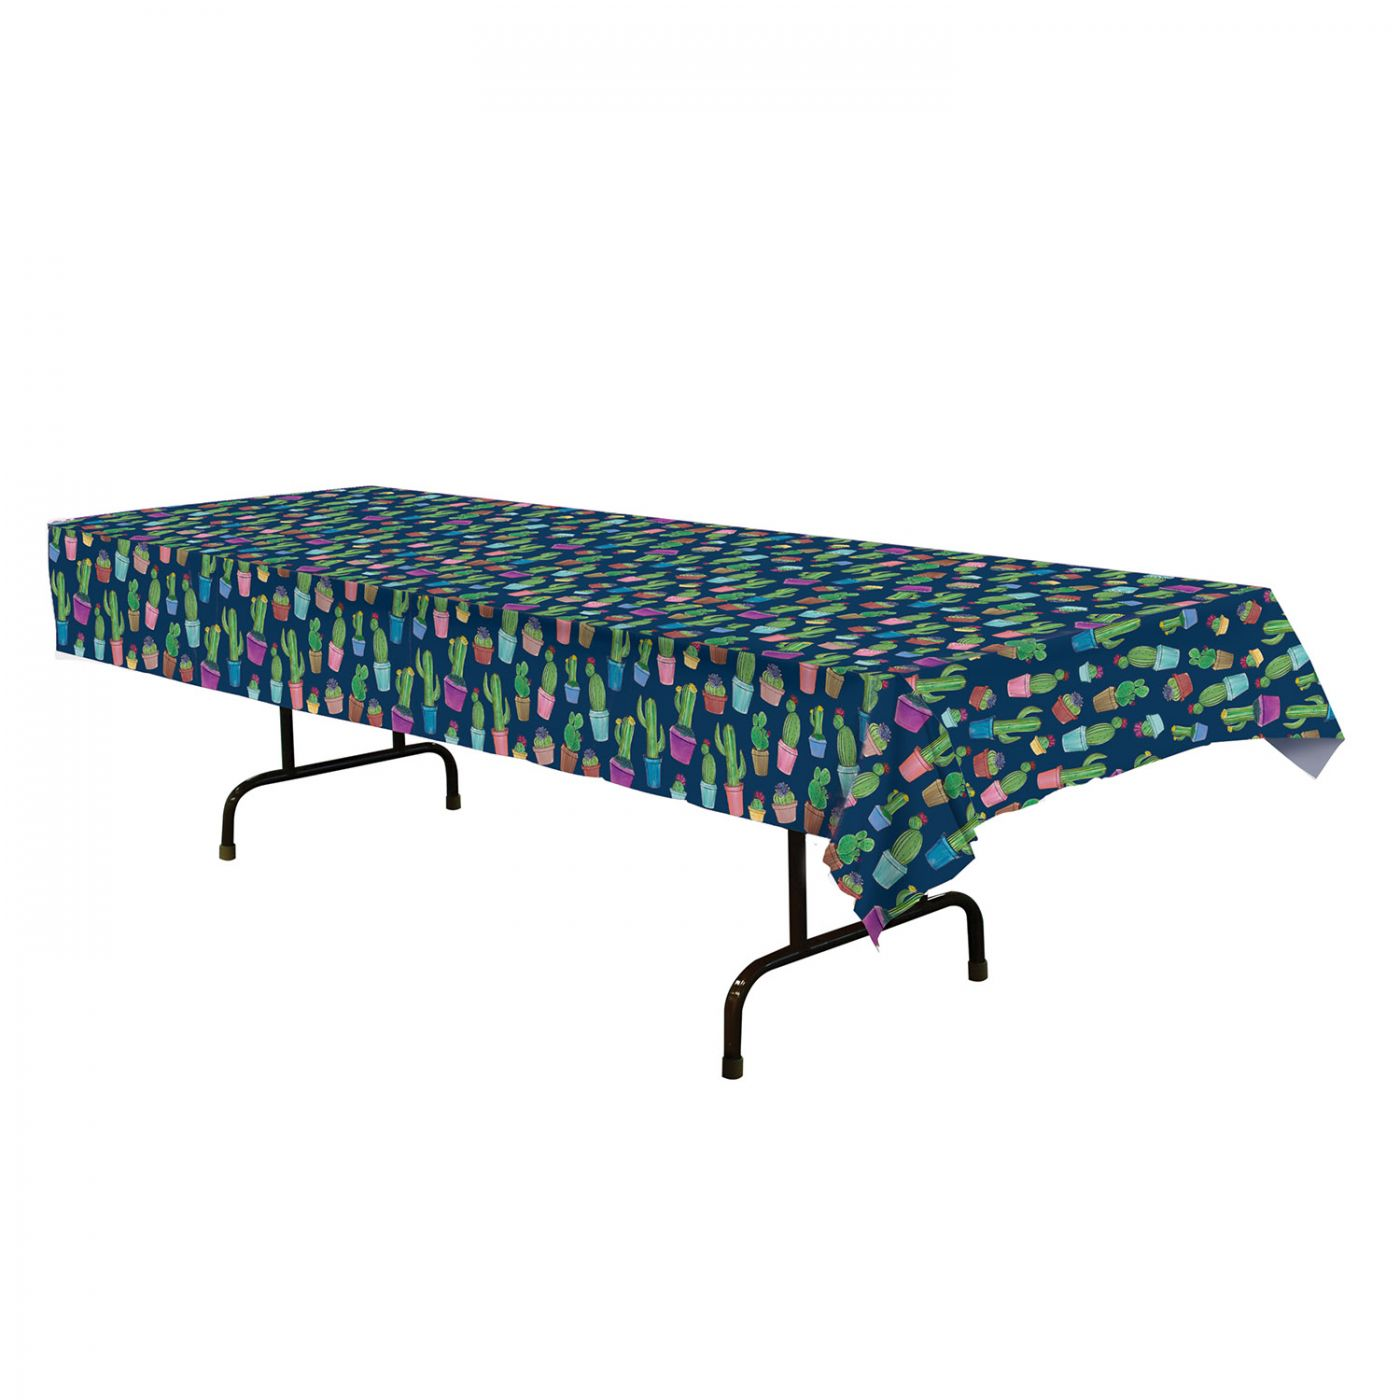 Cactus Tablecover image